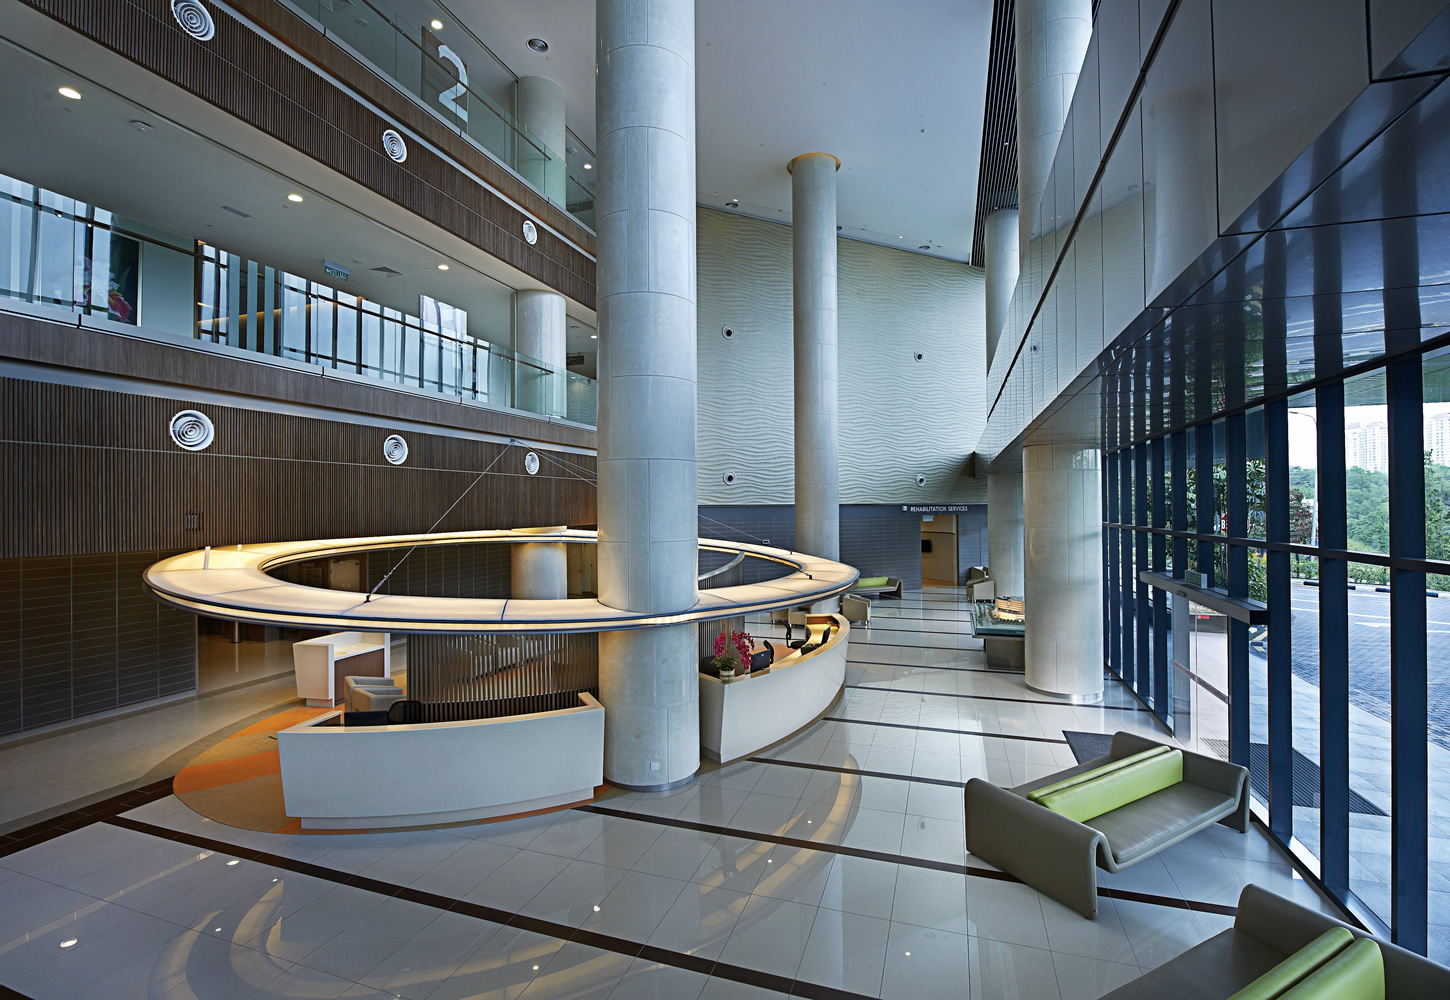 Sime Darby Medical Centre Interiors, Kuala Lumpur